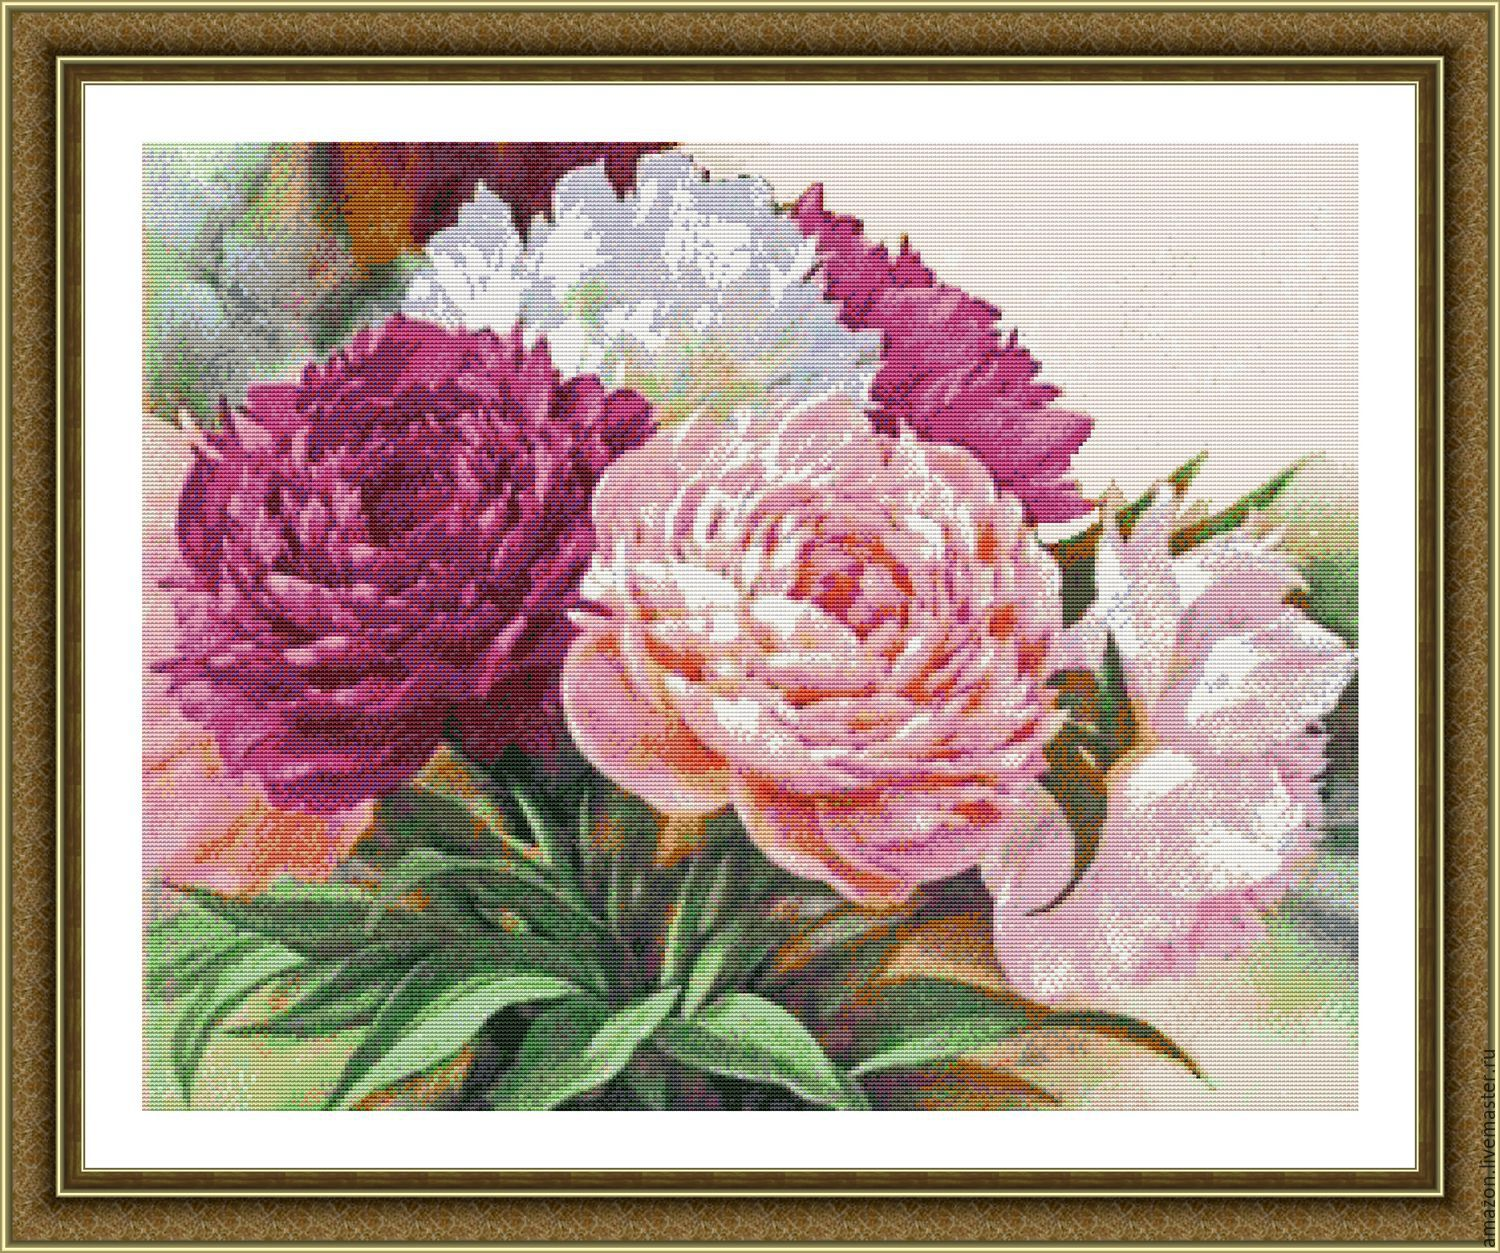 PEONIES symbolize a burning passion and undying love.